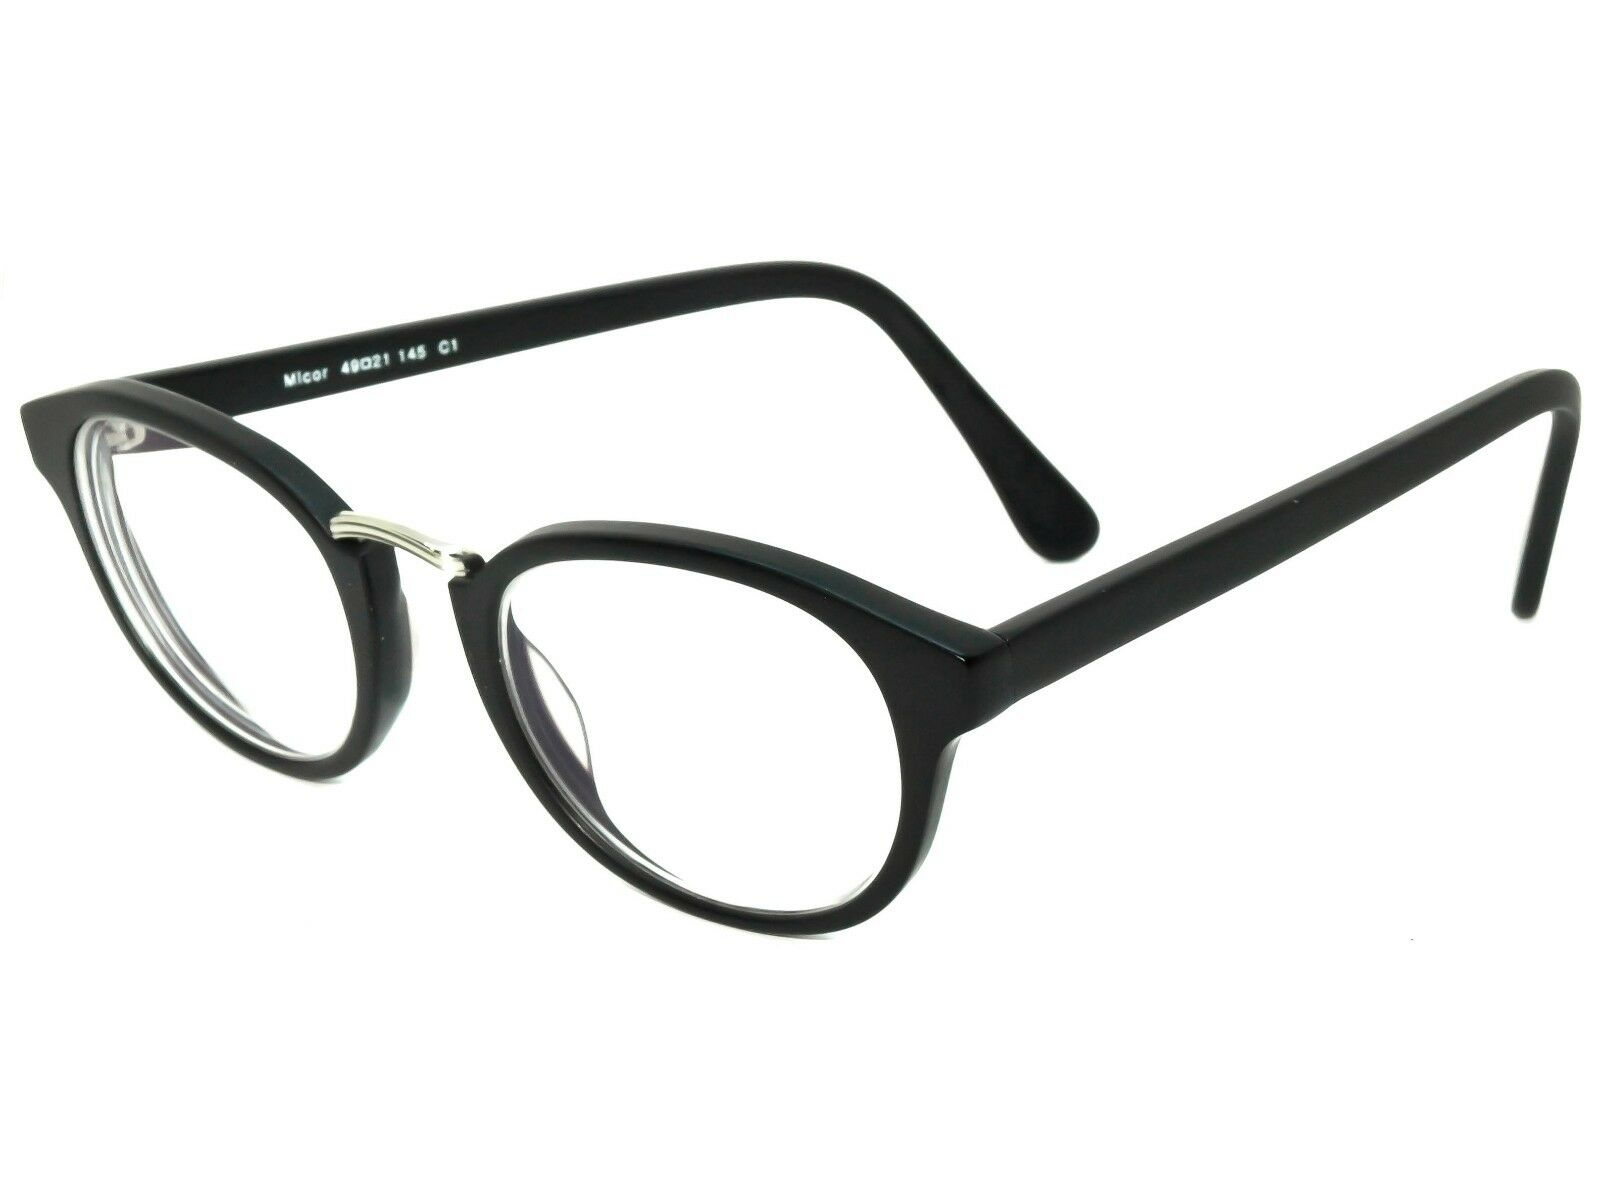 Eyebuydirect Micor C1 Eyeglasses